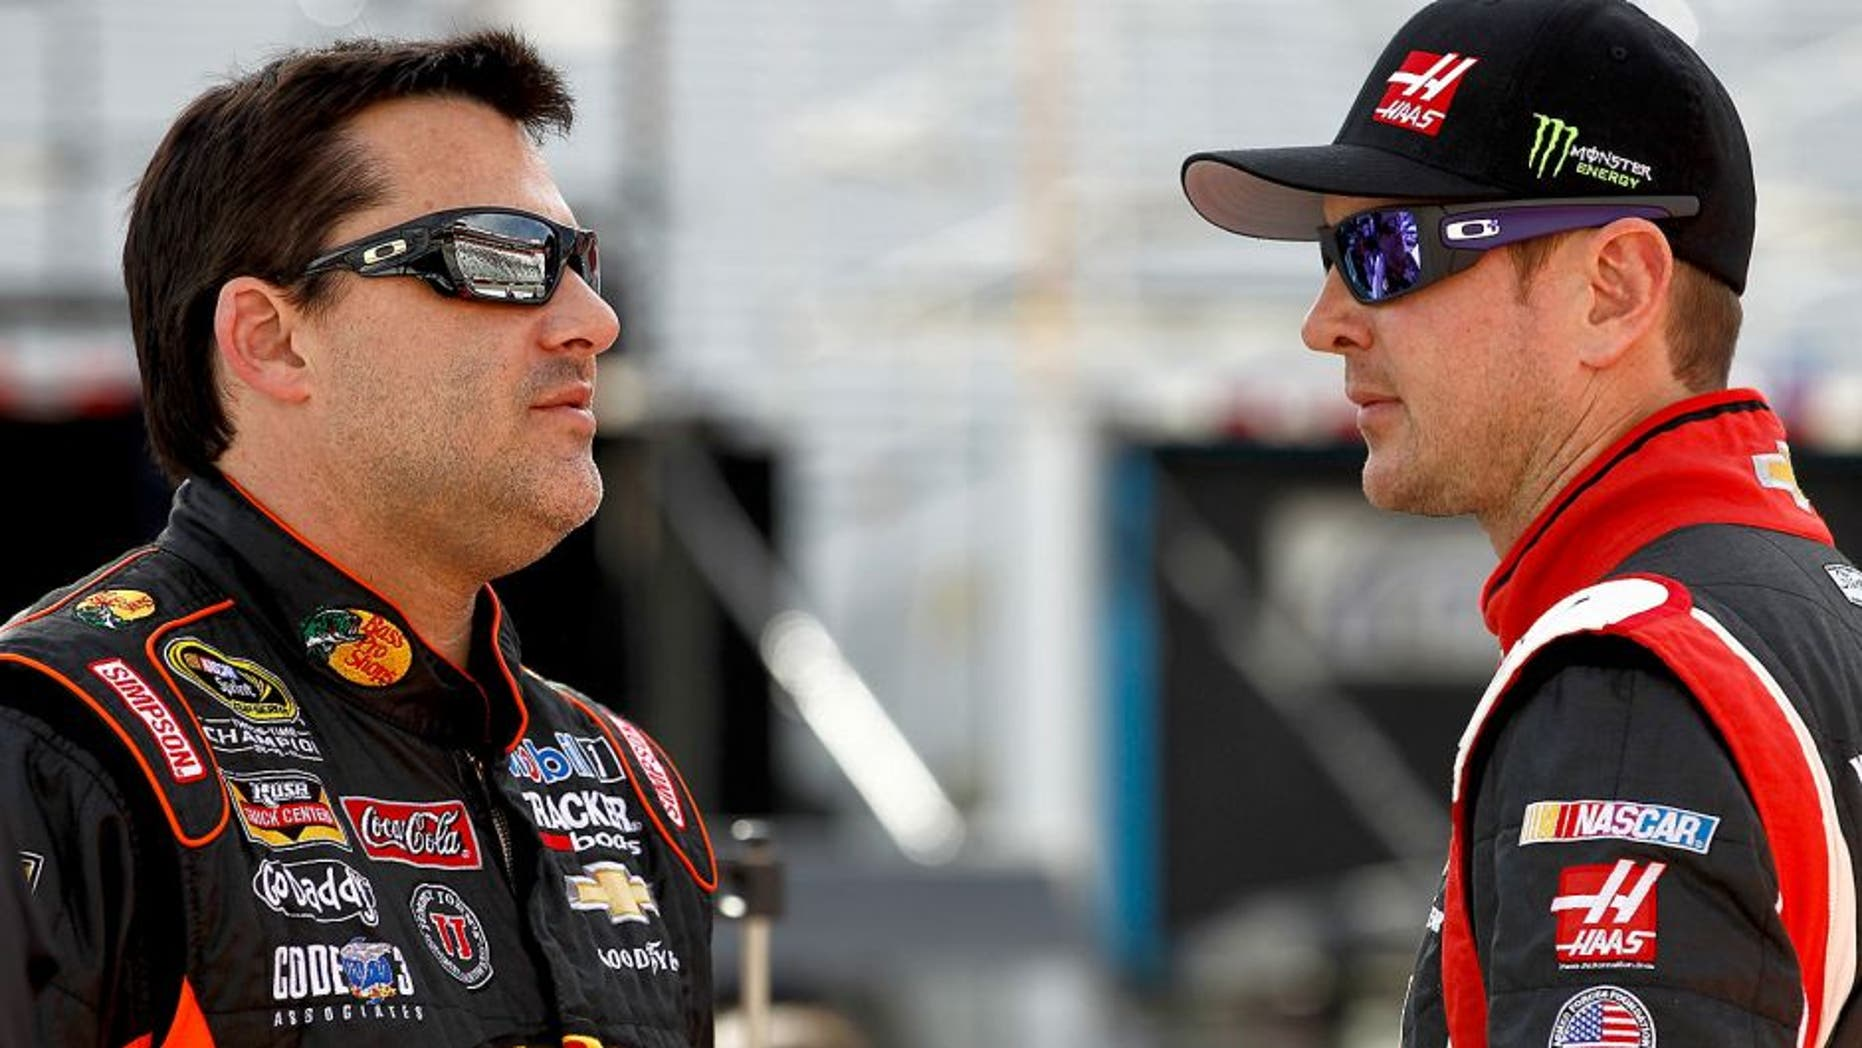 BRISTOL, TN - MARCH 14: Tony Stewart, driver of the #14 Bass Pro Shops / Mobil 1 Chevrolet, talks with Kurt Busch, driver of the #41 Haas Automation Chevrolet, on the grid during qualifying for the NASCAR Sprint Cup Series Food City 500 at Bristol Motor Speedway on March 14, 2014 in Bristol, Tennessee. (Photo by Jeff Zelevansky/NASCAR via Getty Images)